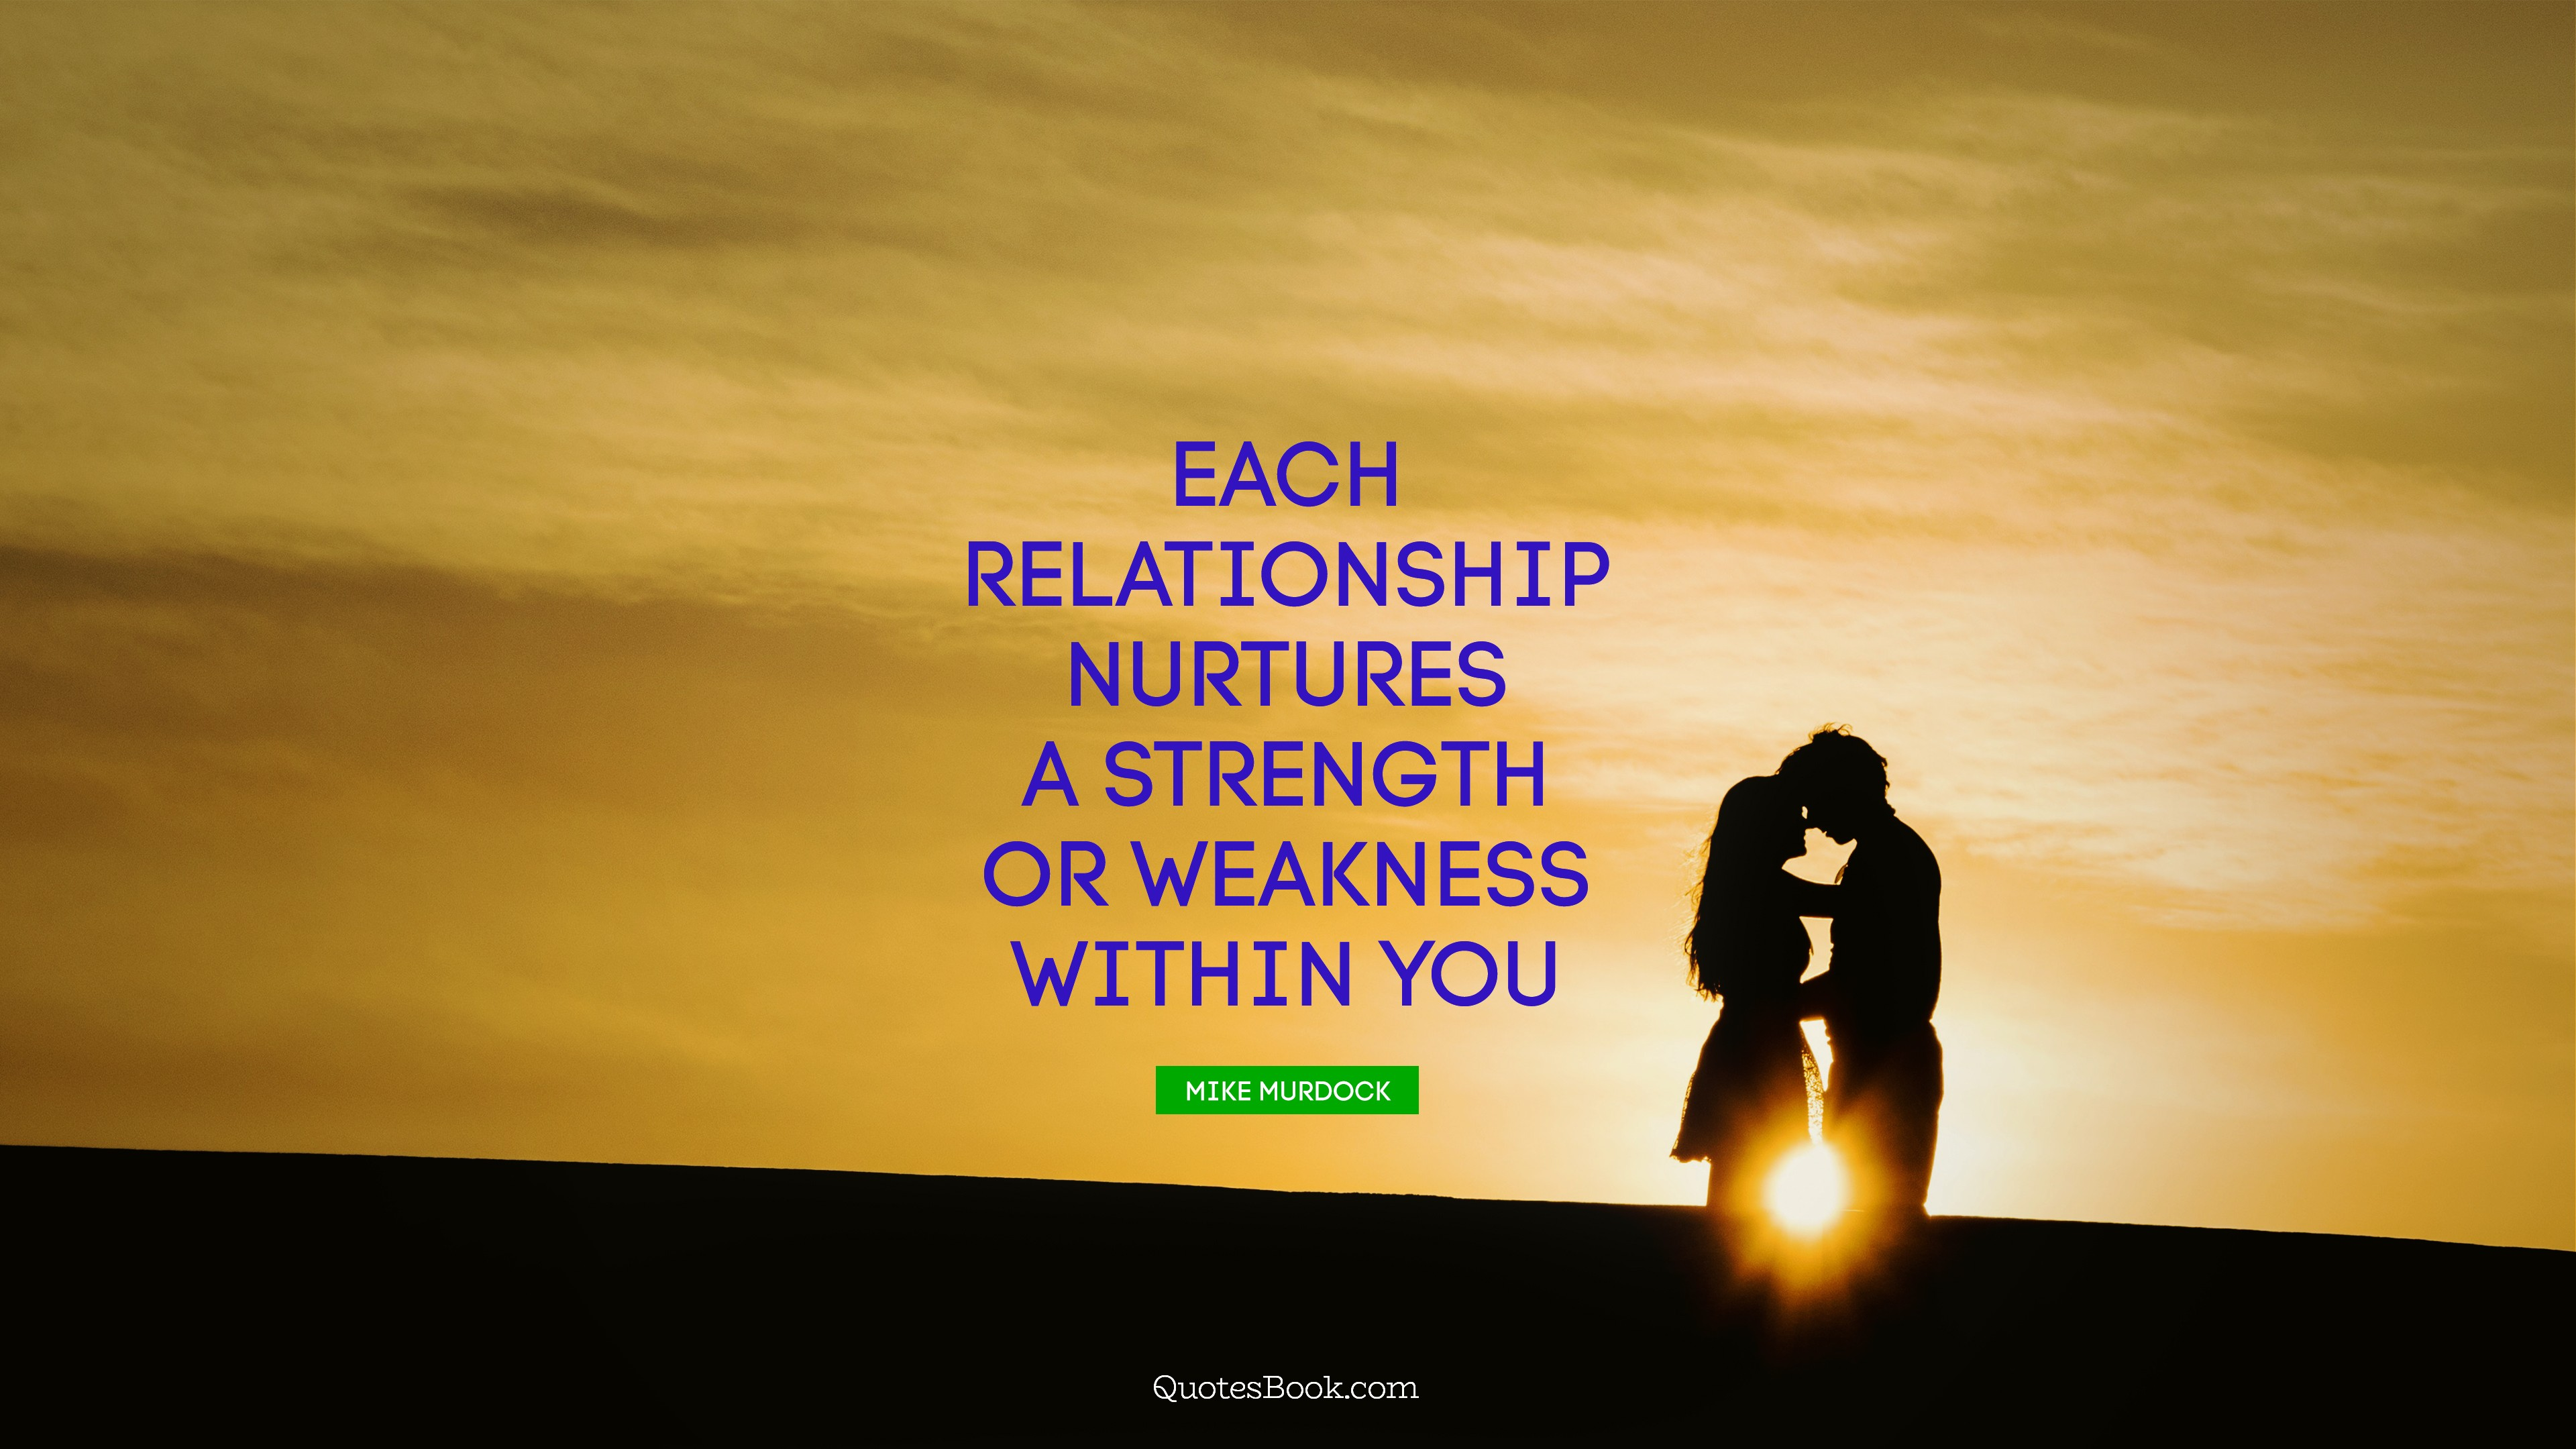 Each relationship nurtures a strength or weakness within you ...